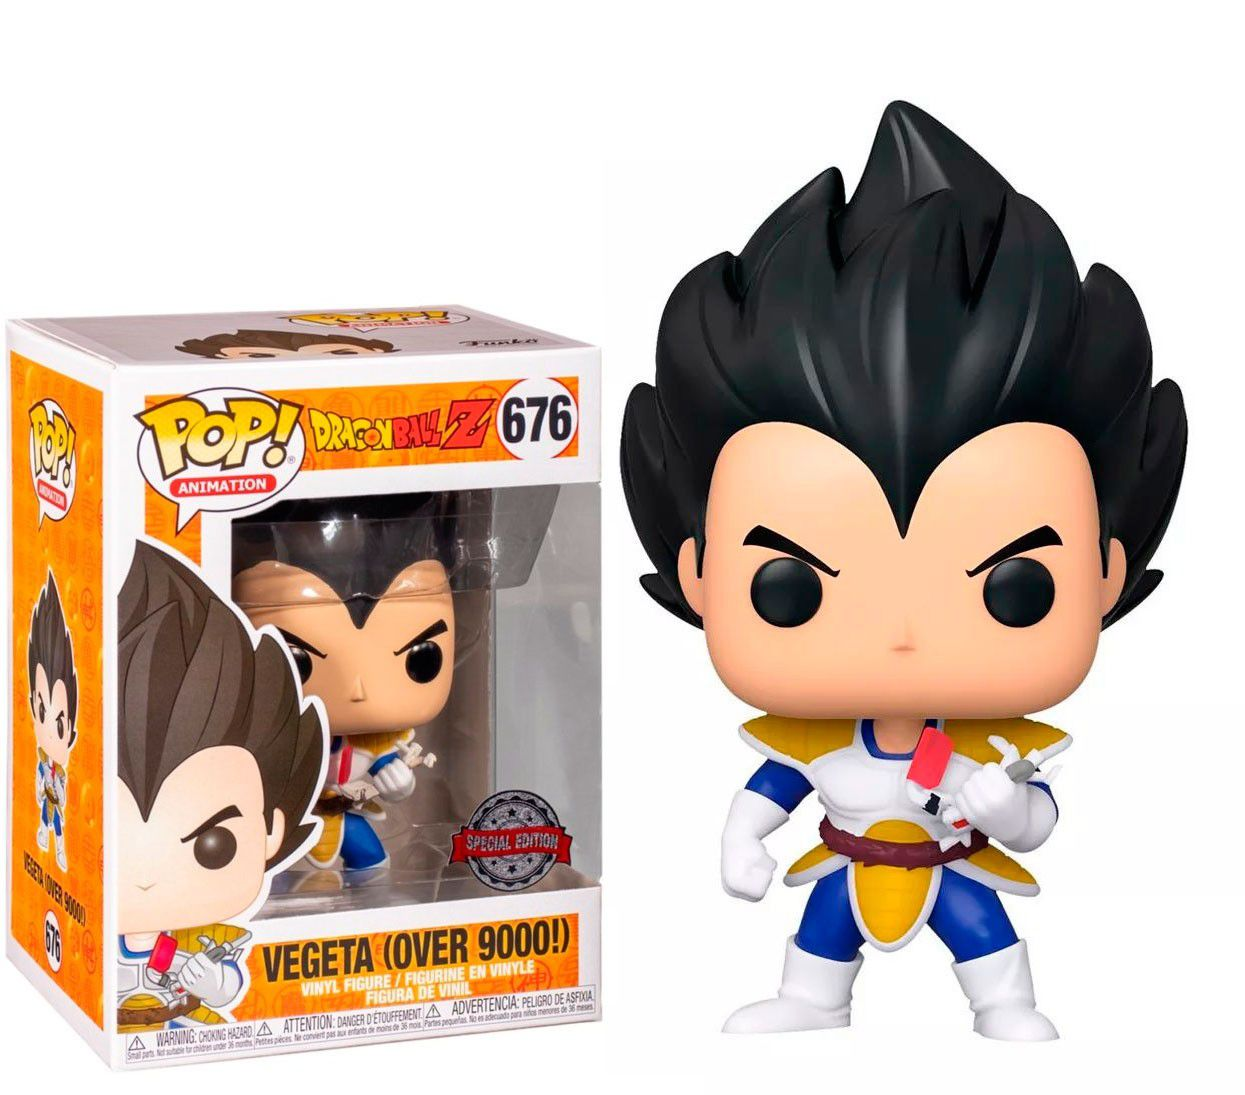 POP FUNKO 676 VEGETA (OVER 9000)